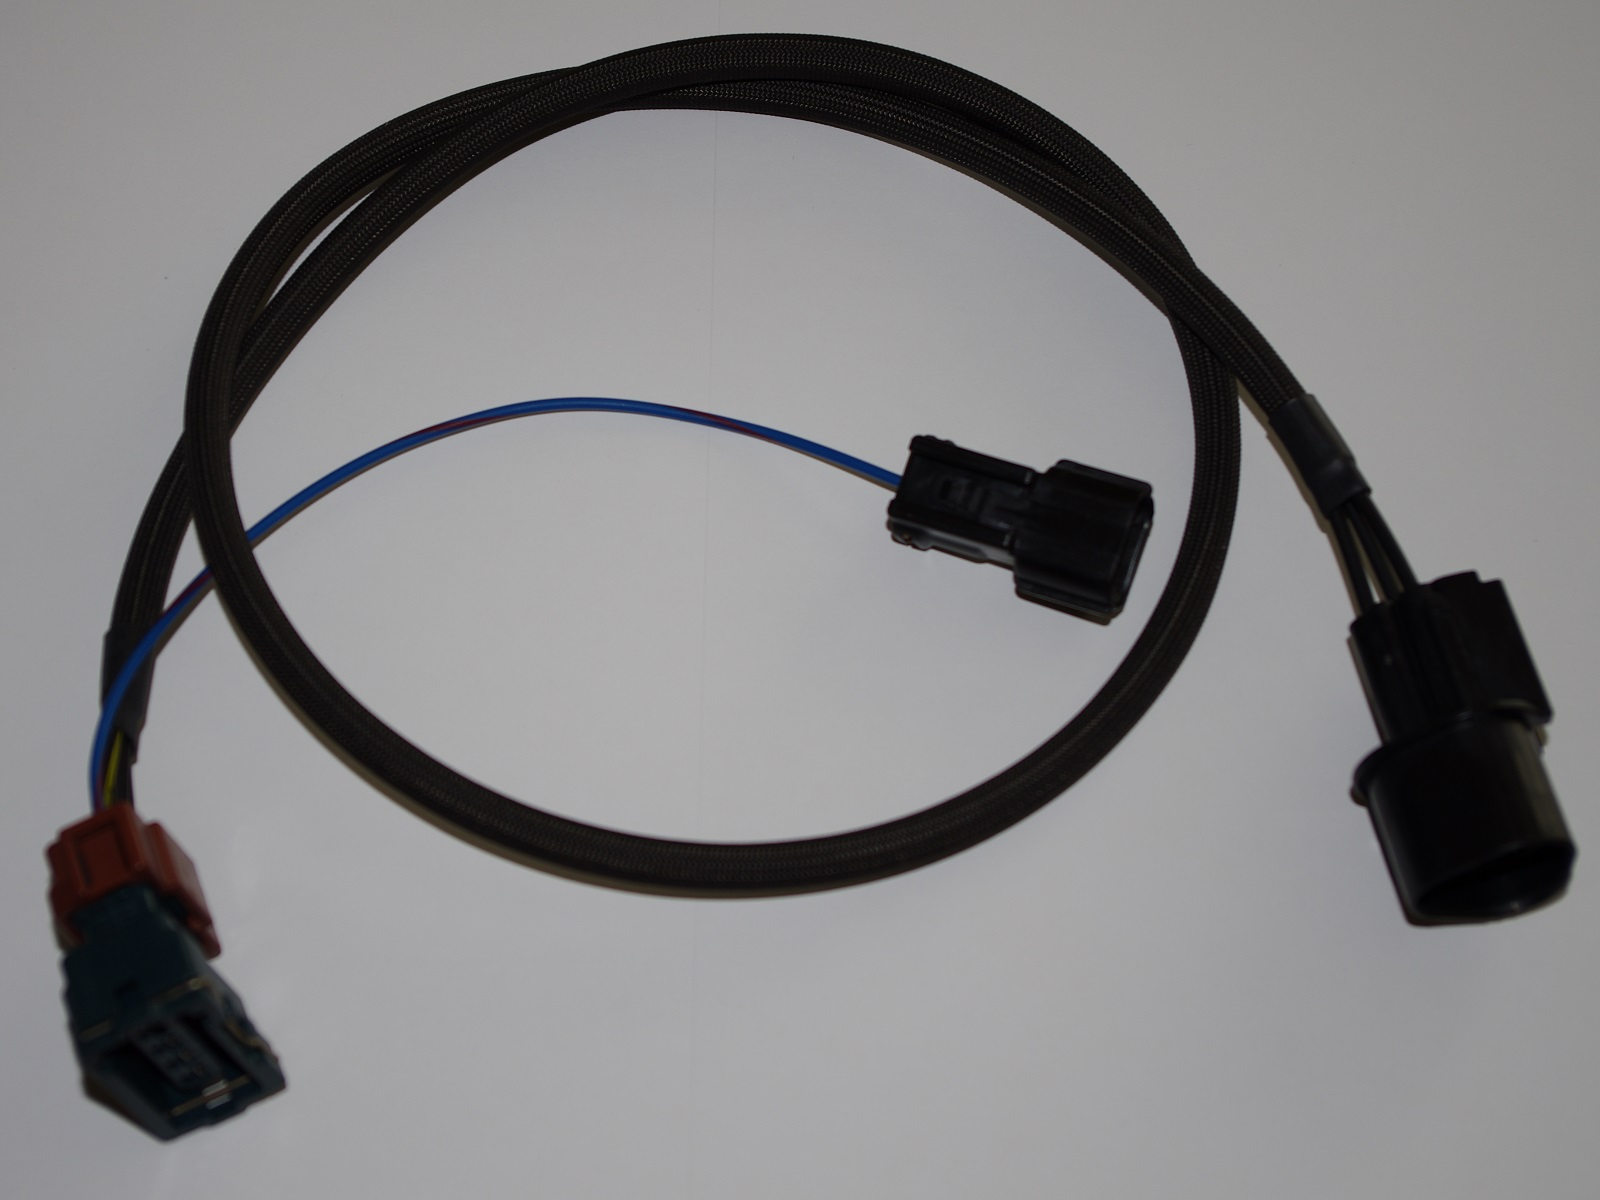 """Sheridan Engineering """"1G"""" in a """"2G"""" Cam Angle Sensor (CAS) harness: Mitsubishi Eclipse (1997-1999 Style)"""